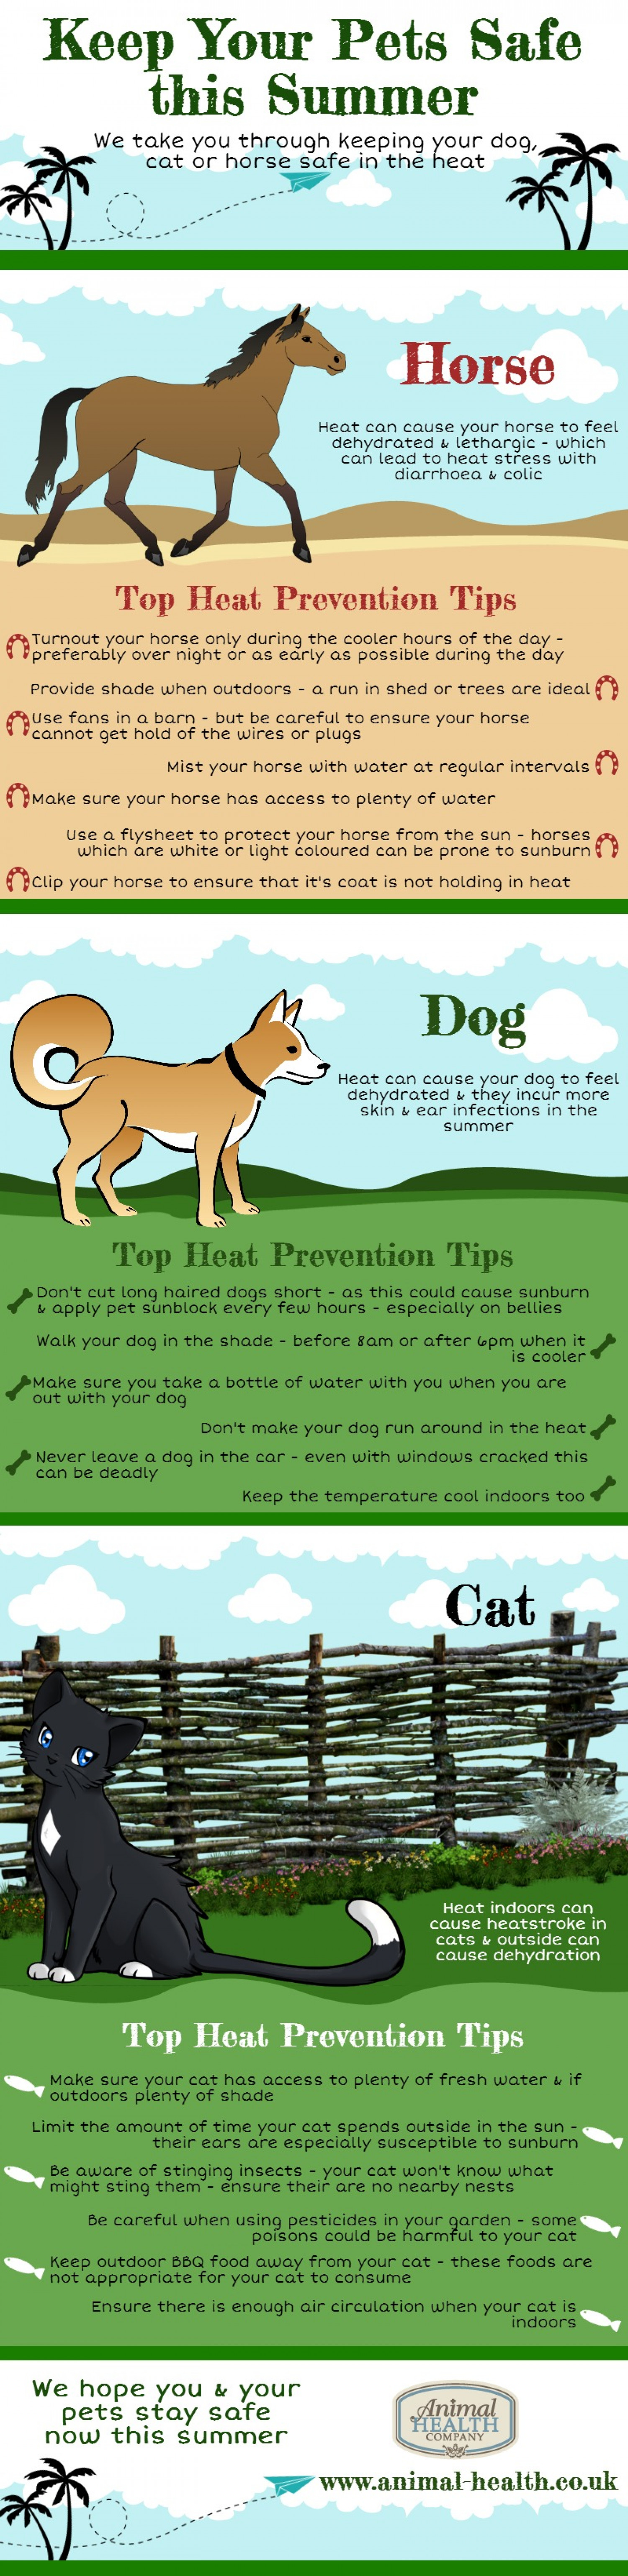 Keep Your Pets Safe this Summer Infographic